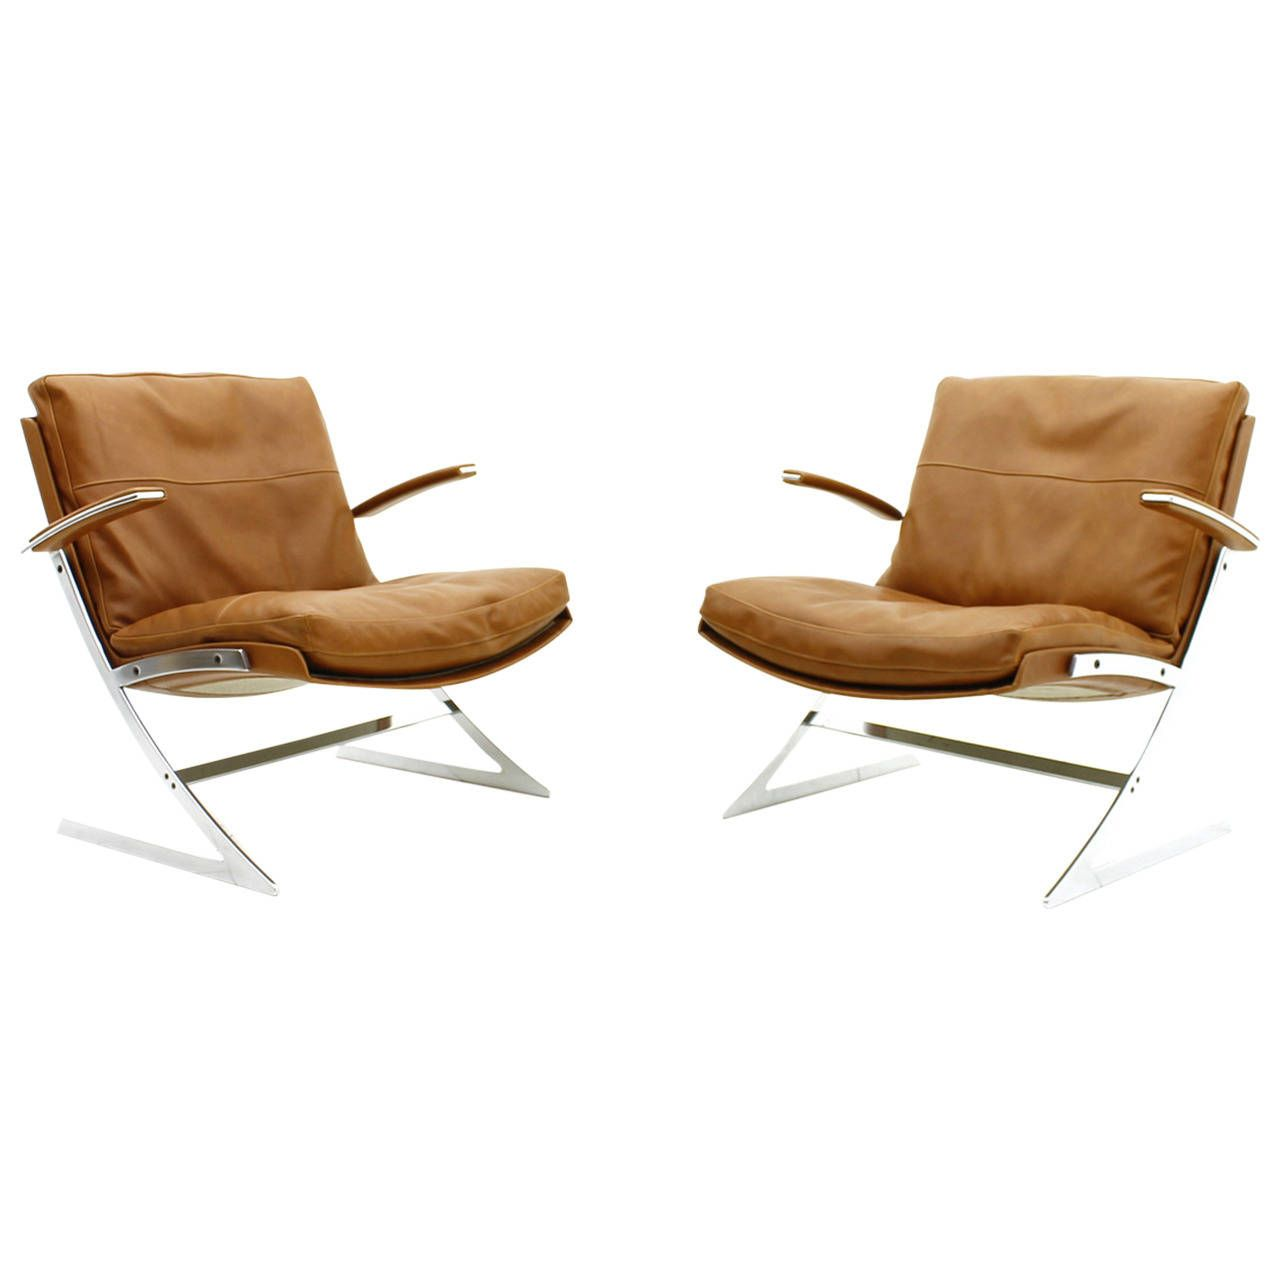 Pair Of Lobby Lounge Chairs By Preben Fabricius For Arnold Exclusiv 1972 Danish Lounge Chair Leather Chaise Lounge Chair Vintage Lounge Chair